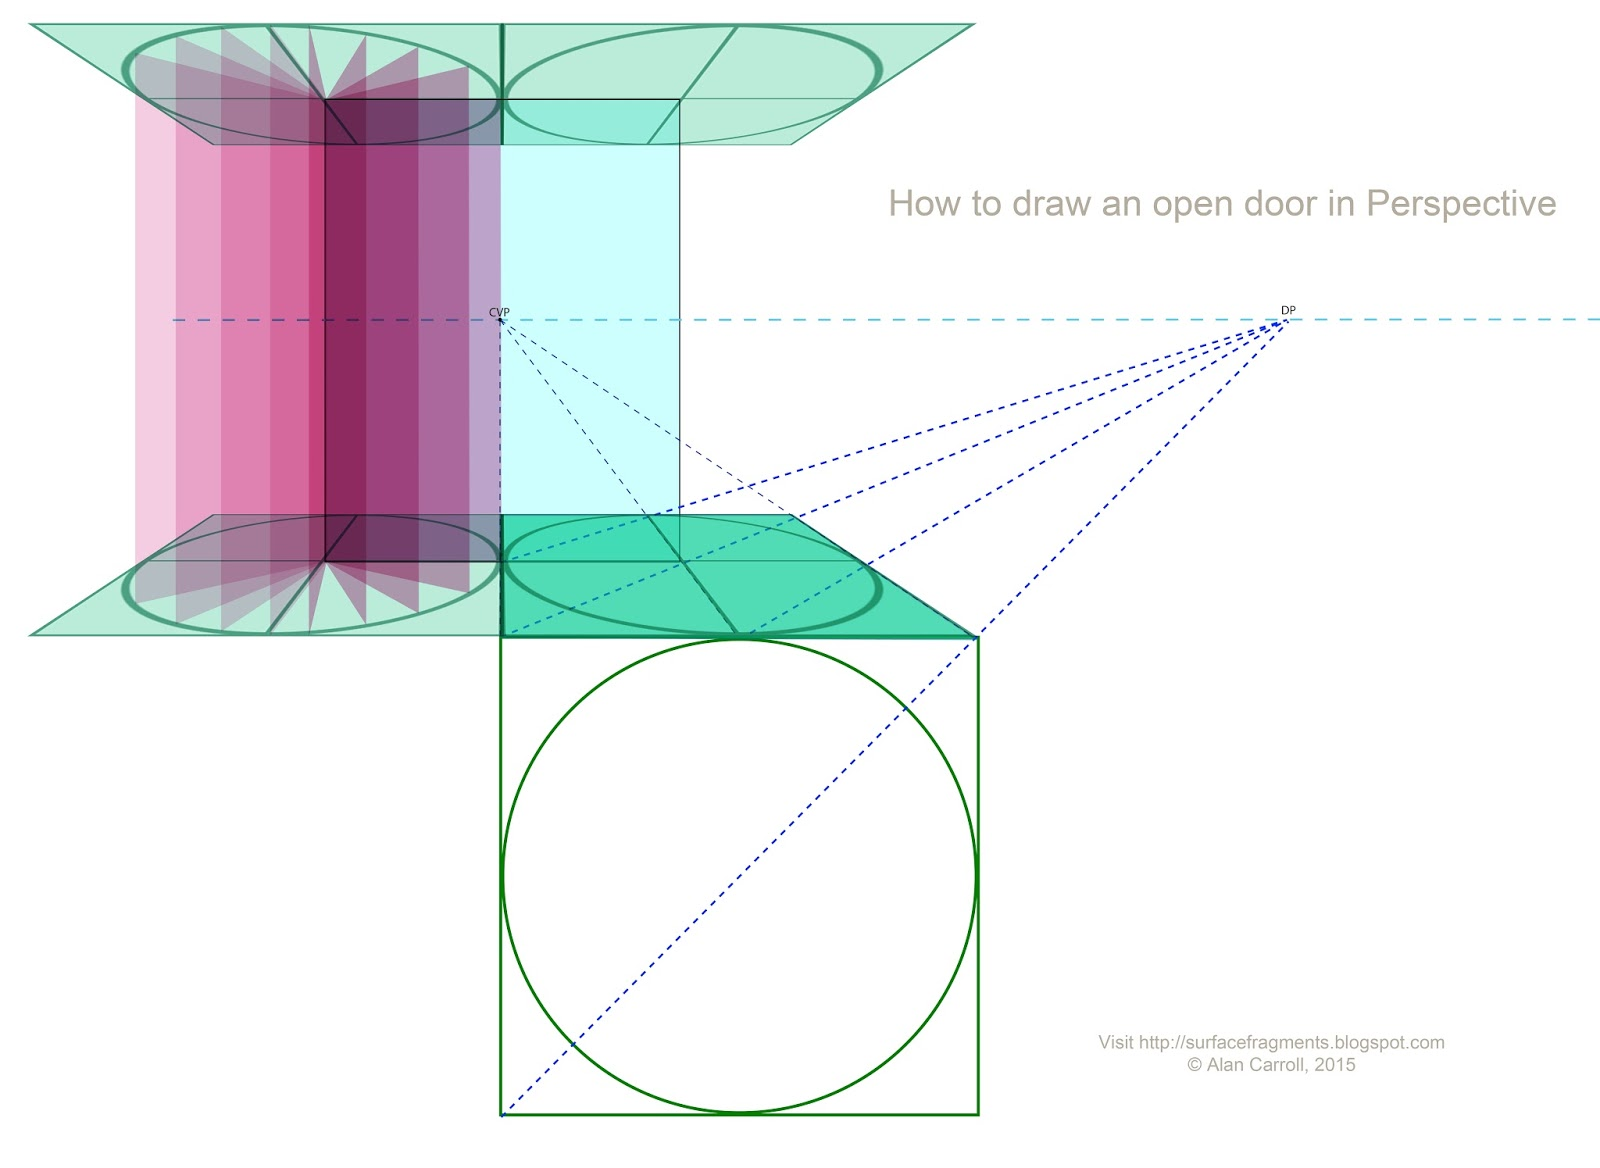 Open door drawing perspective - Shut That Door How To Paint Doors In Perspective